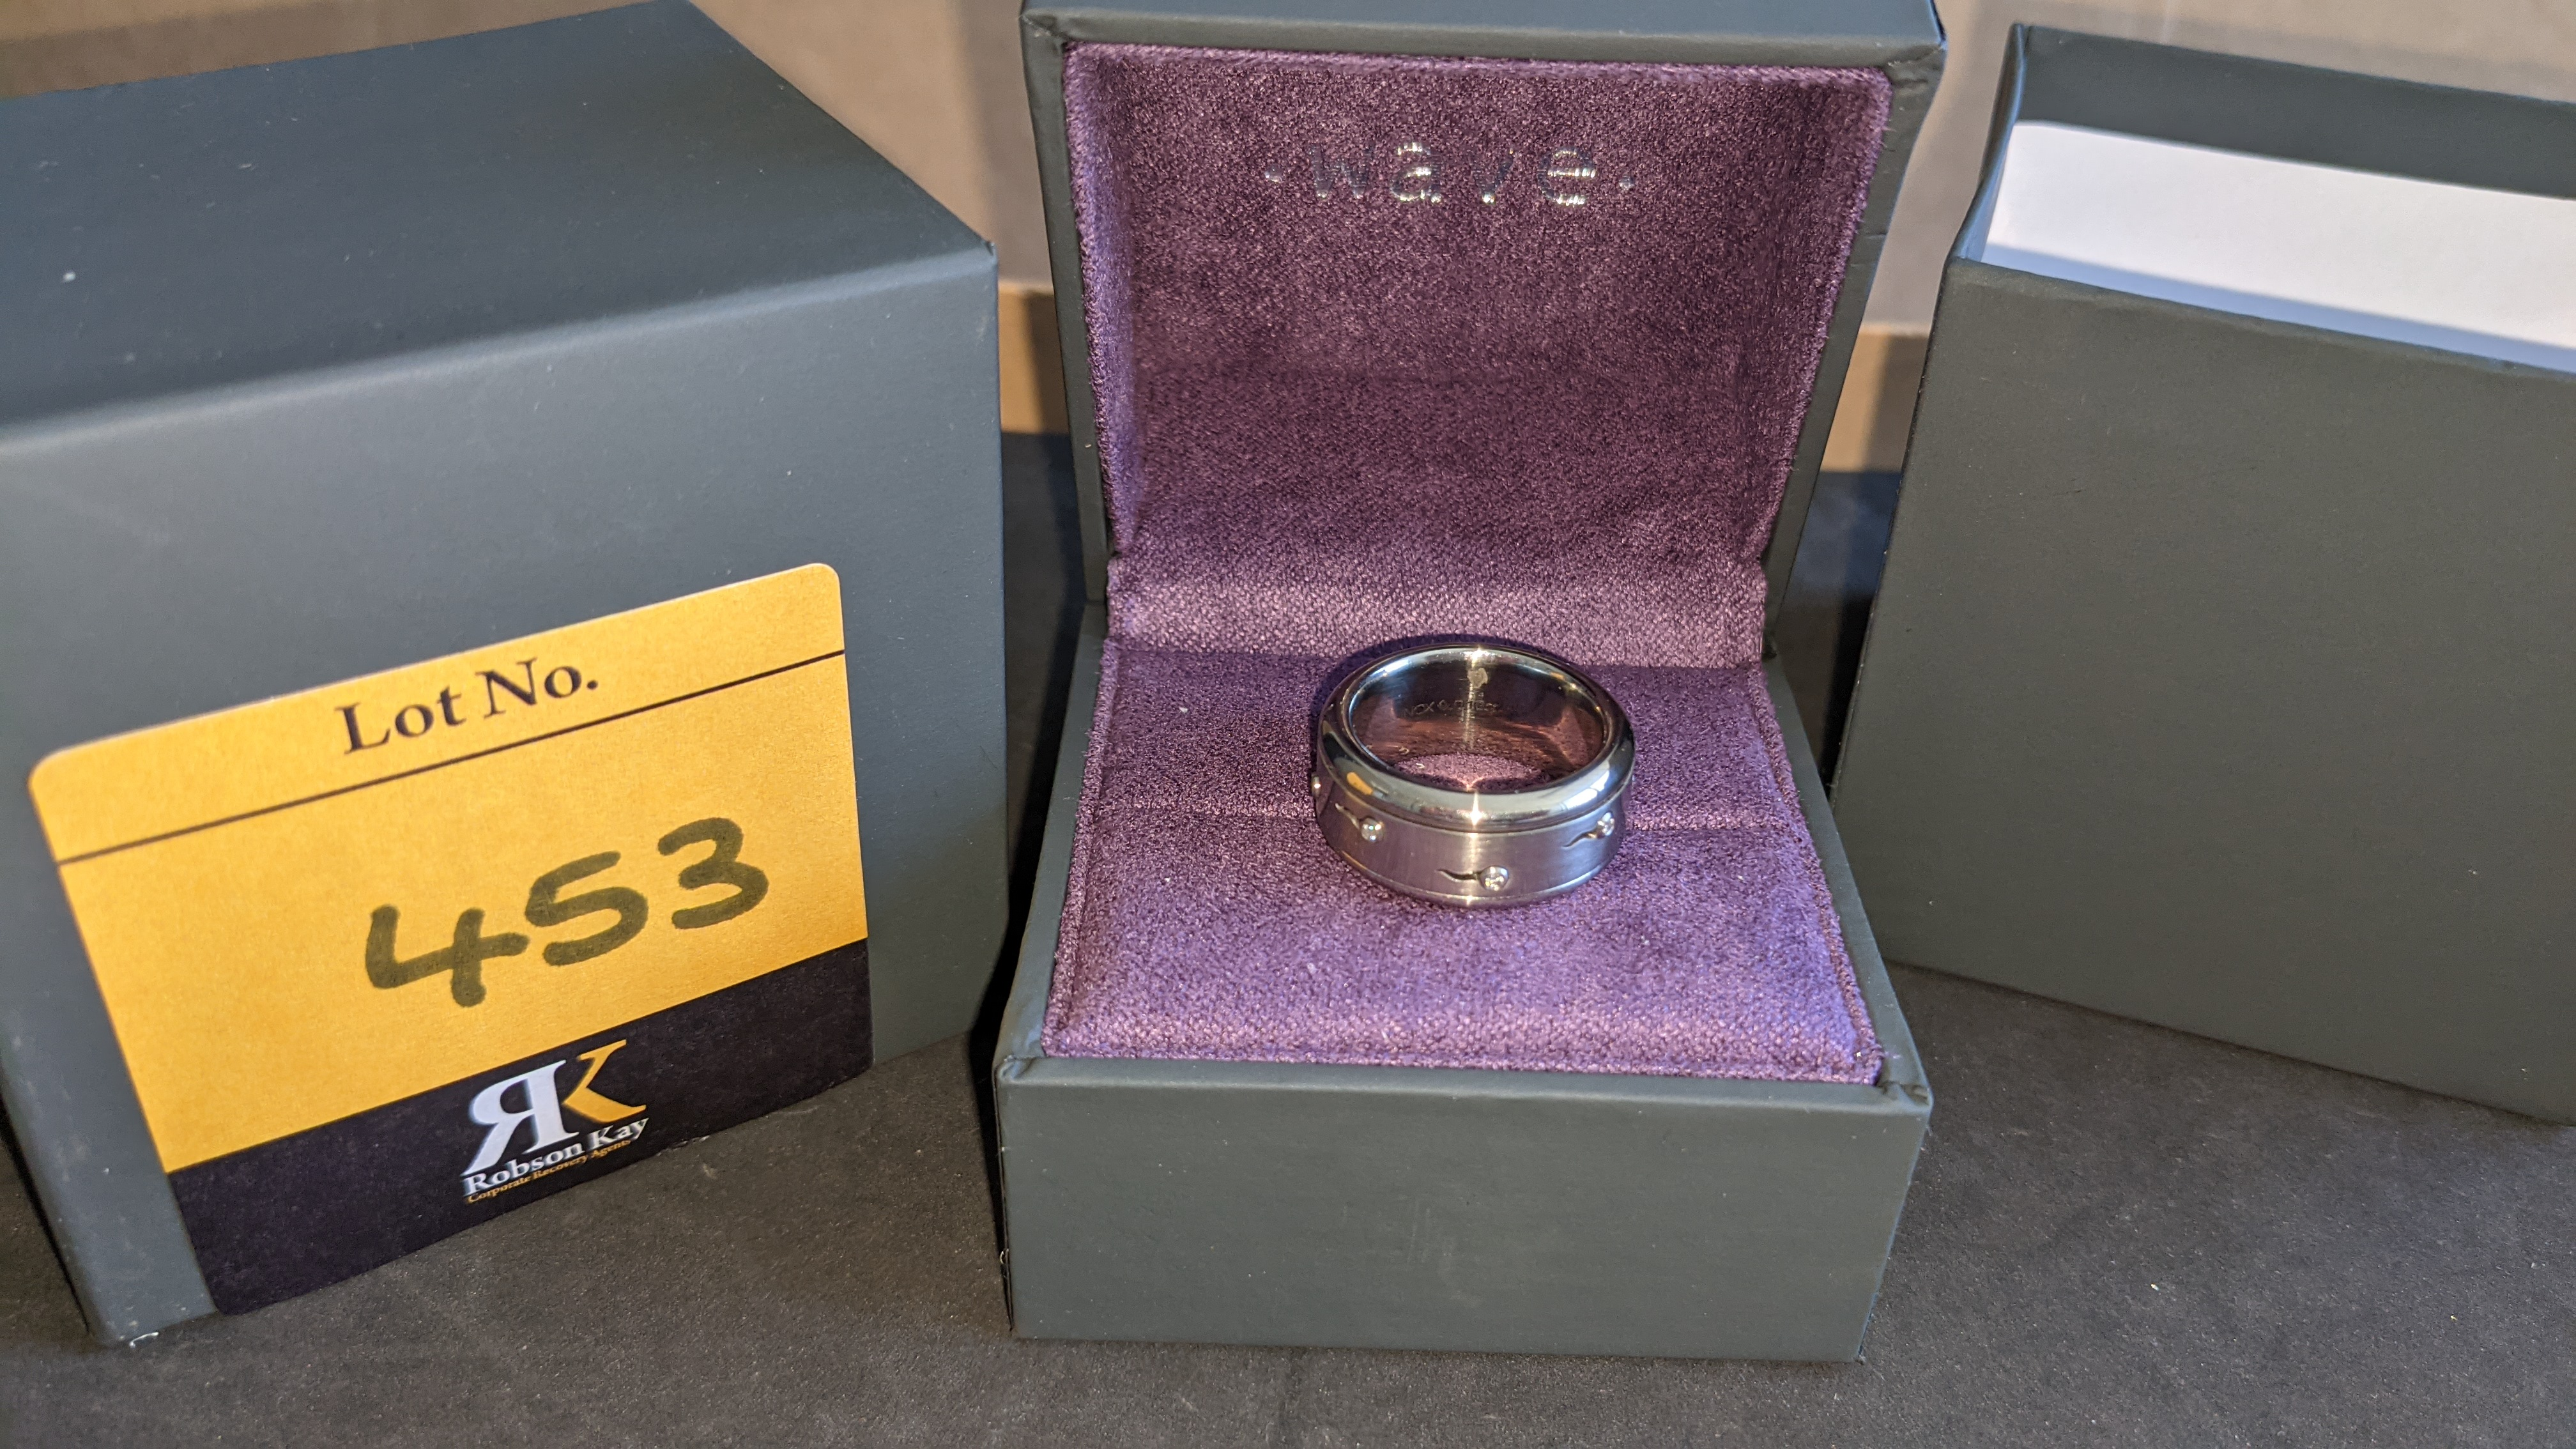 Stainless steel & diamond spin ring RRP £455 - Image 2 of 13